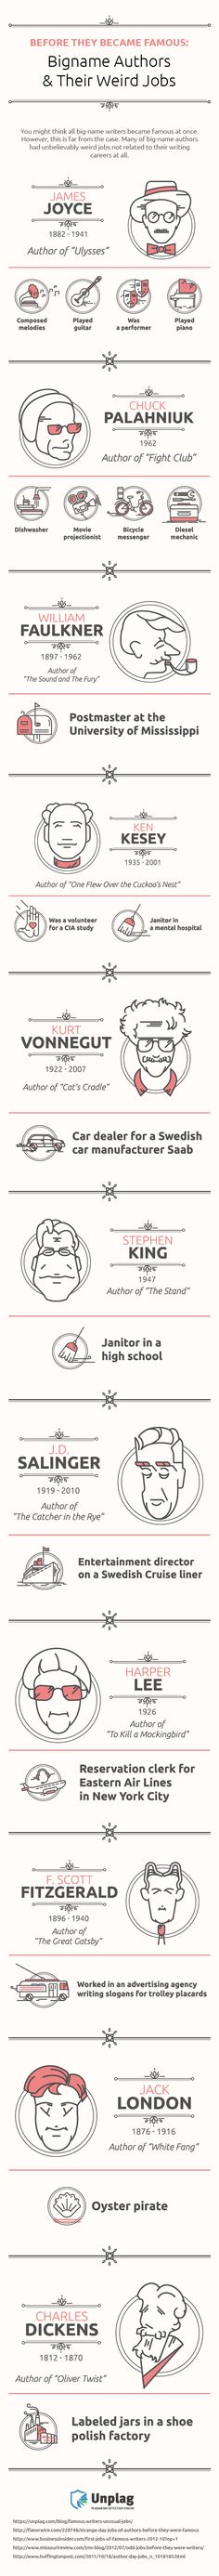 Unusual Jobs of Famous Writers - Writers Write